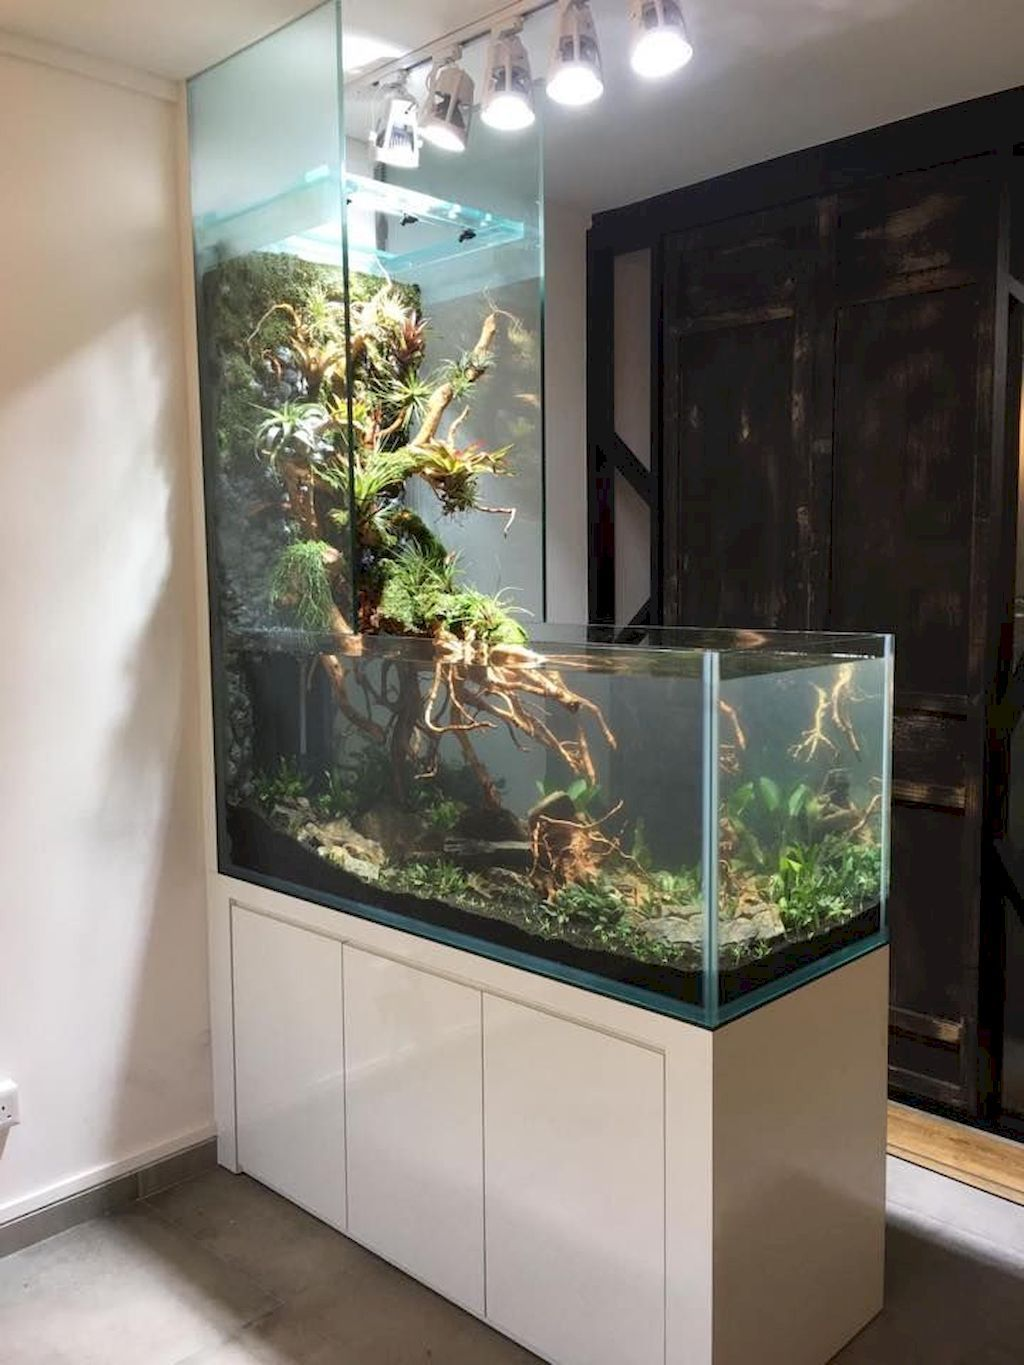 Creative Wall Auarium Designs For Home Decoration And Amazing Room Separator Part 28 Elonahome Com In 2020 Wall Aquarium Home Aquarium House Design